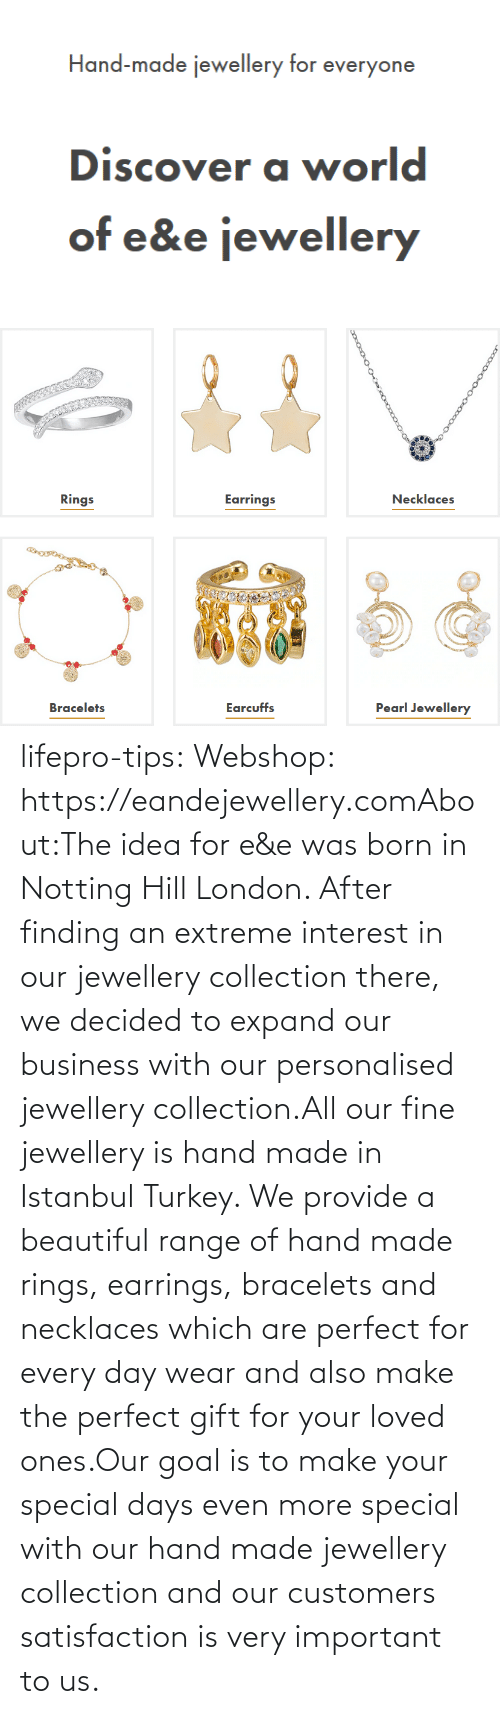 born: lifepro-tips: Webshop: https://eandejewellery.comAbout:The idea for e&e was born in Notting Hill London. After  finding an extreme interest in our jewellery collection there, we  decided to expand our business with our personalised jewellery  collection.All our fine jewellery is hand made in Istanbul Turkey. We  provide a beautiful range of hand made rings, earrings, bracelets and  necklaces which are perfect for every day wear and also make the perfect  gift for your loved ones.Our goal is to make your special days even more special with  our hand made jewellery collection and our customers satisfaction is  very important to us.